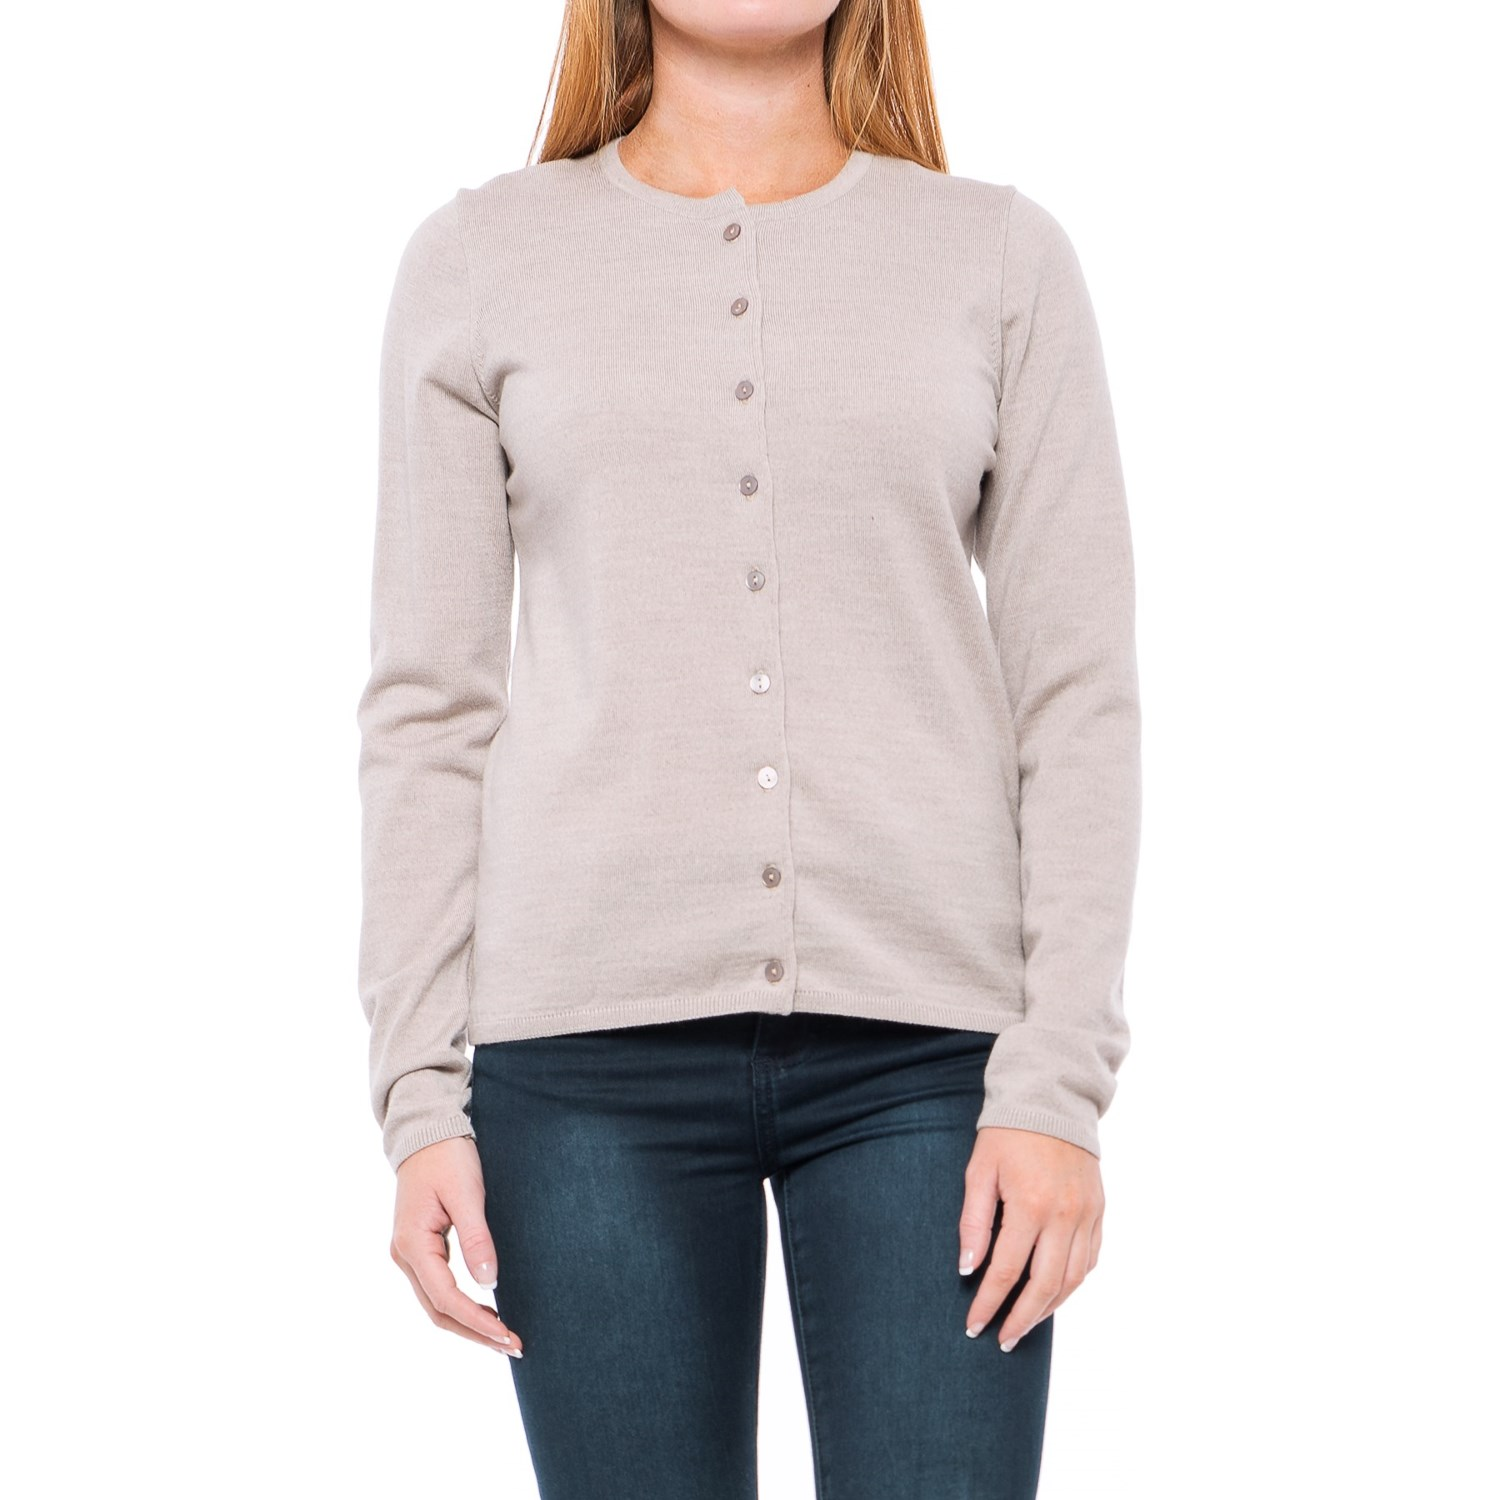 Dale of Norway Marit Cardigan Sweater (For Women) - Save 52%